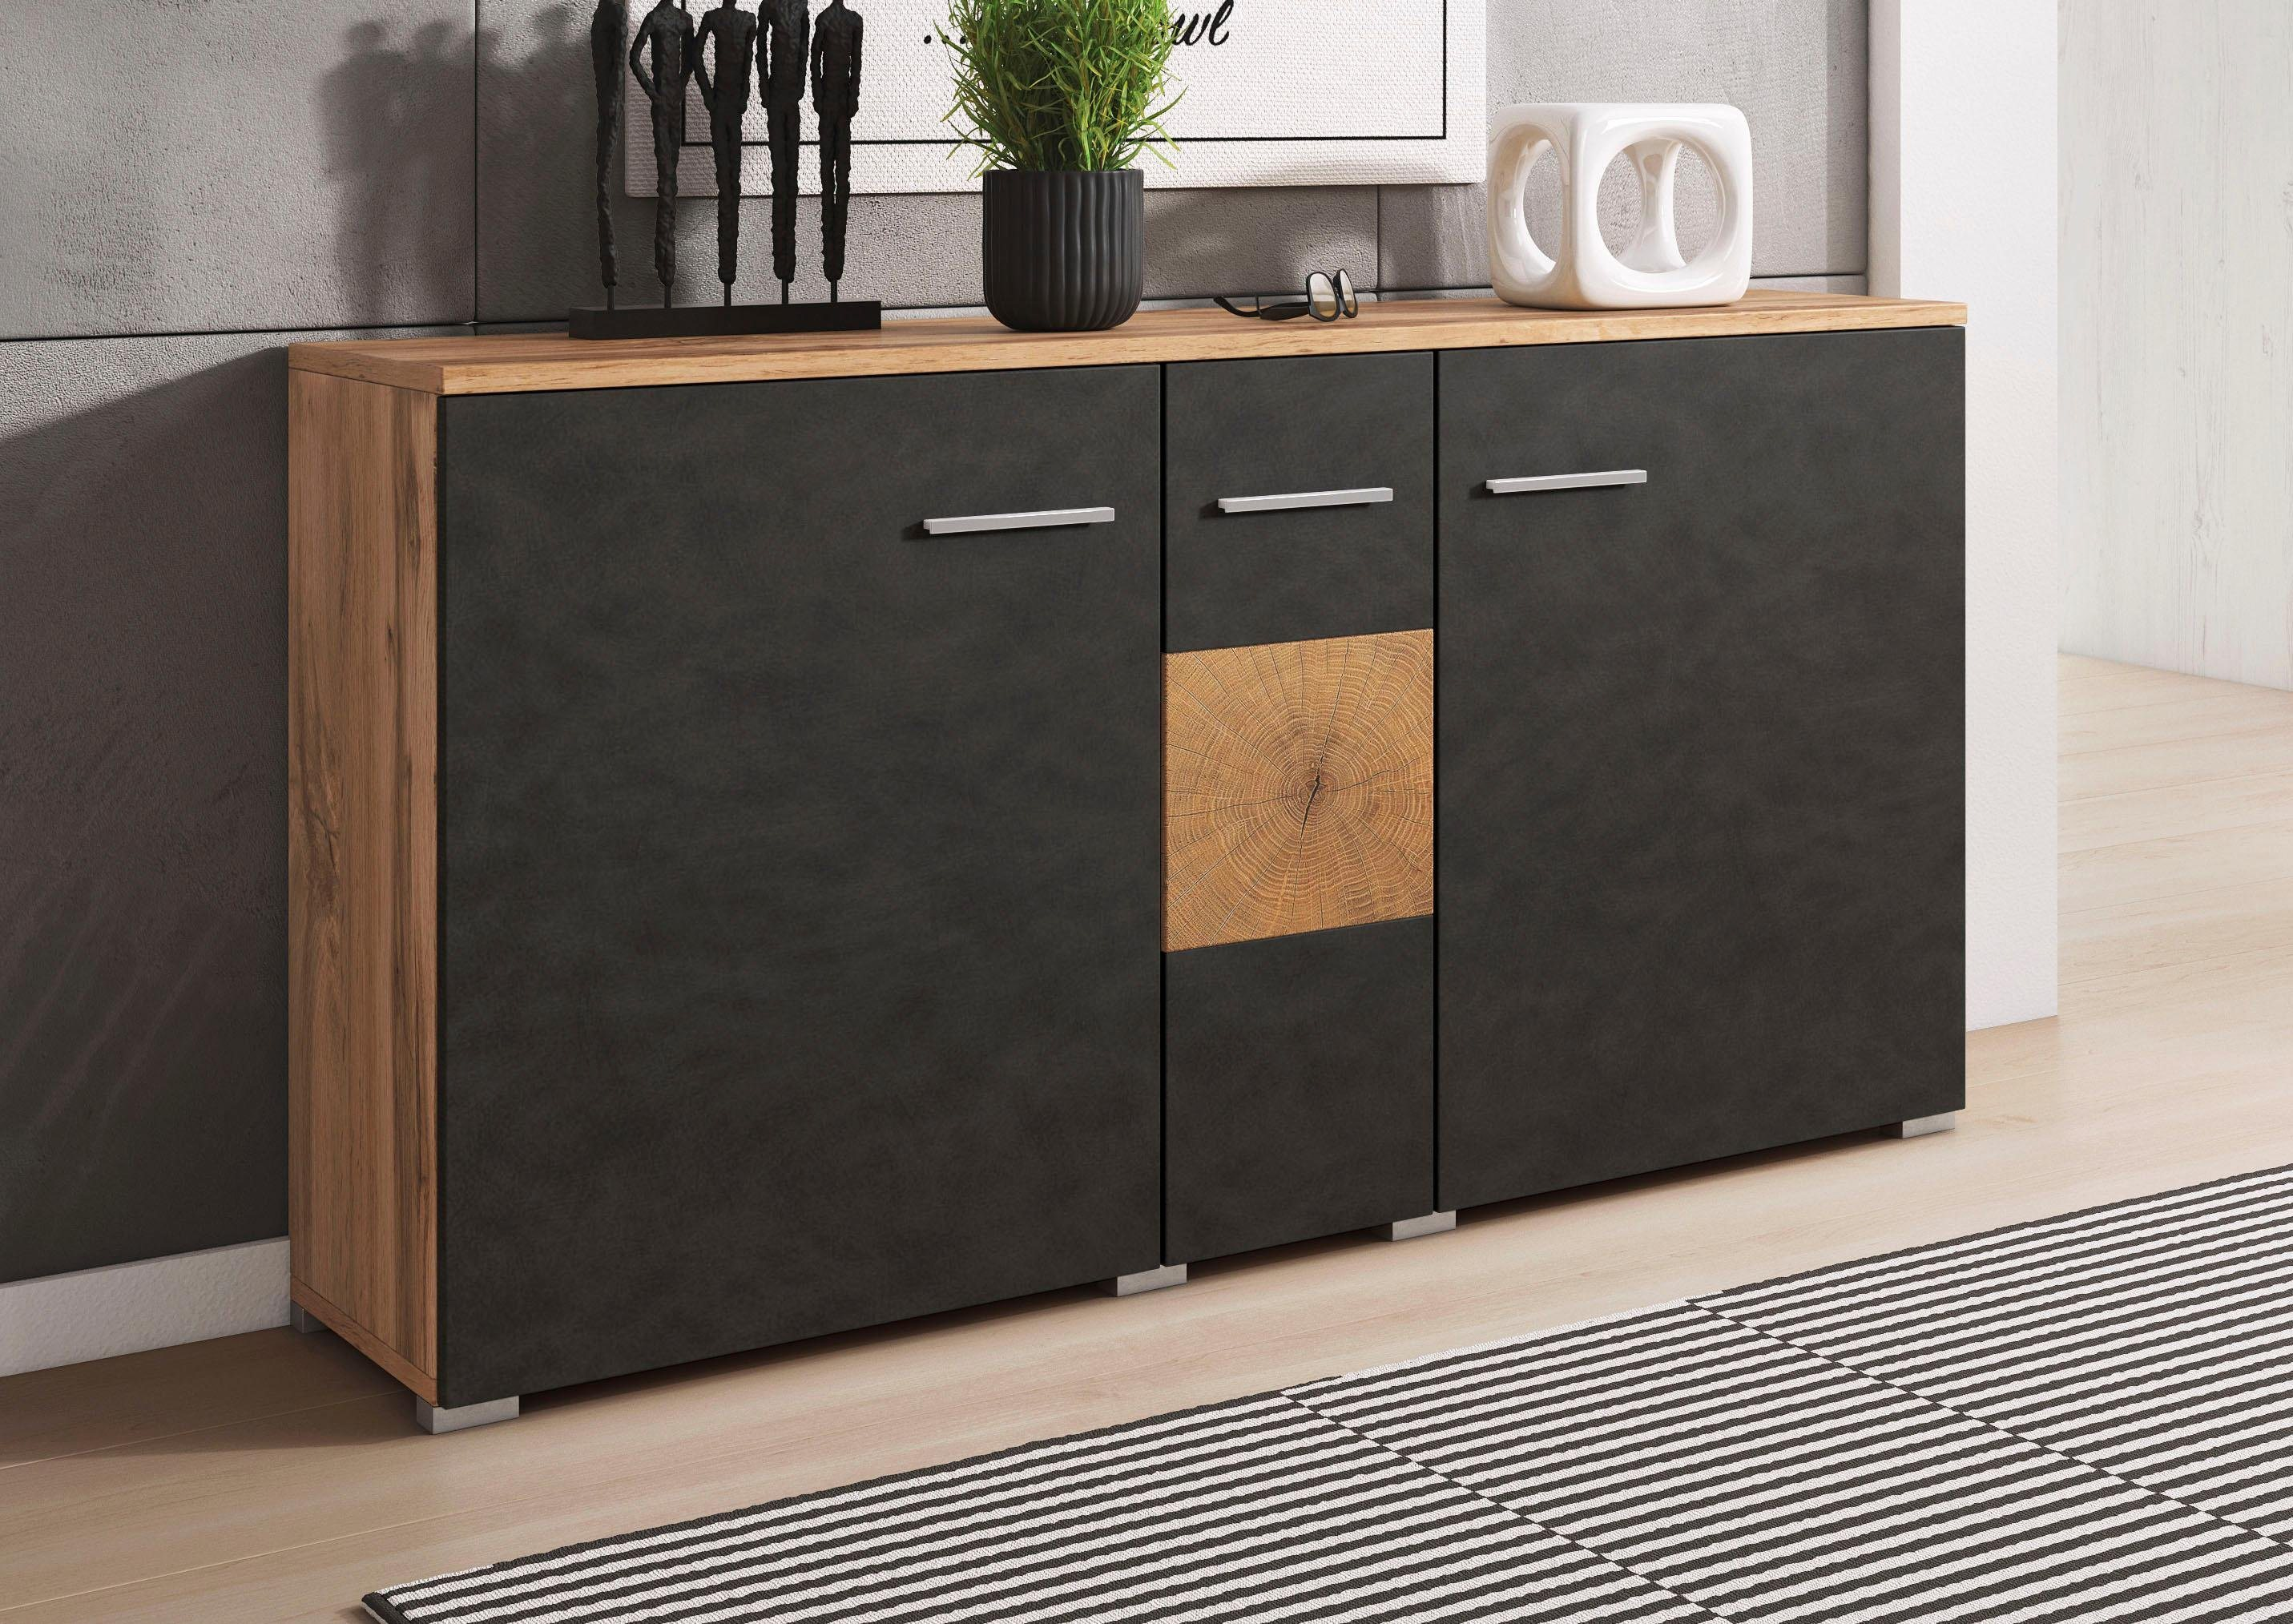 sideboard wobona breite 135 cm grau online kaufen bei woonio. Black Bedroom Furniture Sets. Home Design Ideas